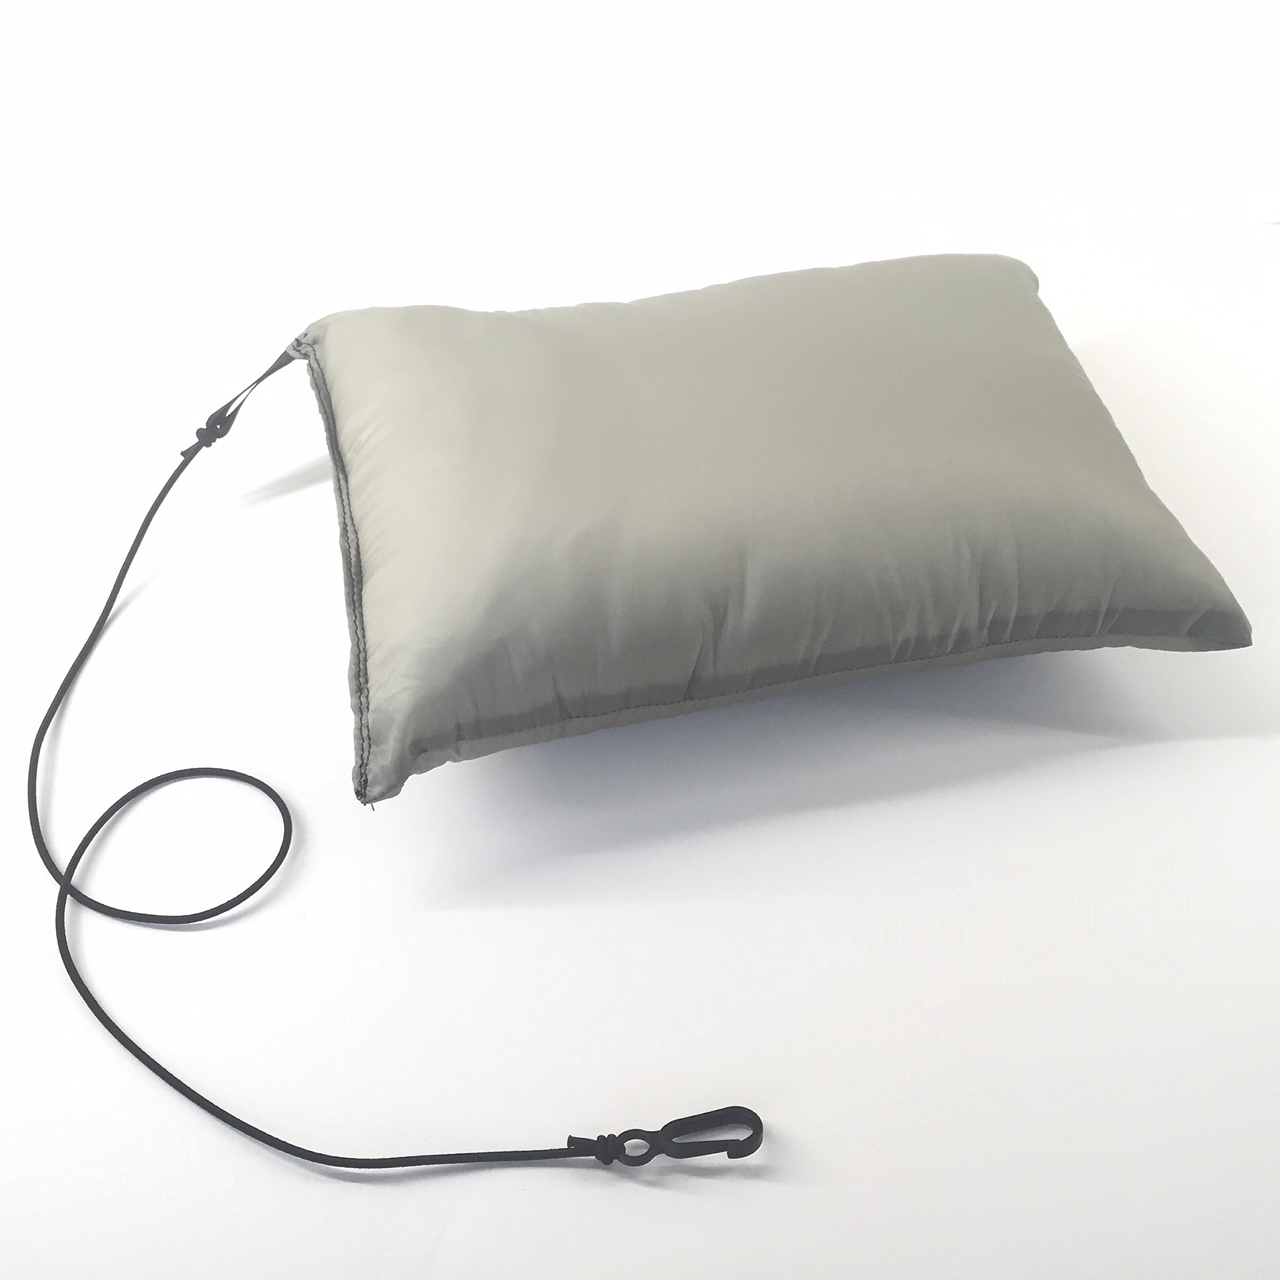 and for of a best fixed the hallmark pillows to style popular stand hanging home chair image amazing channel swing make hammock diy u how family apartment